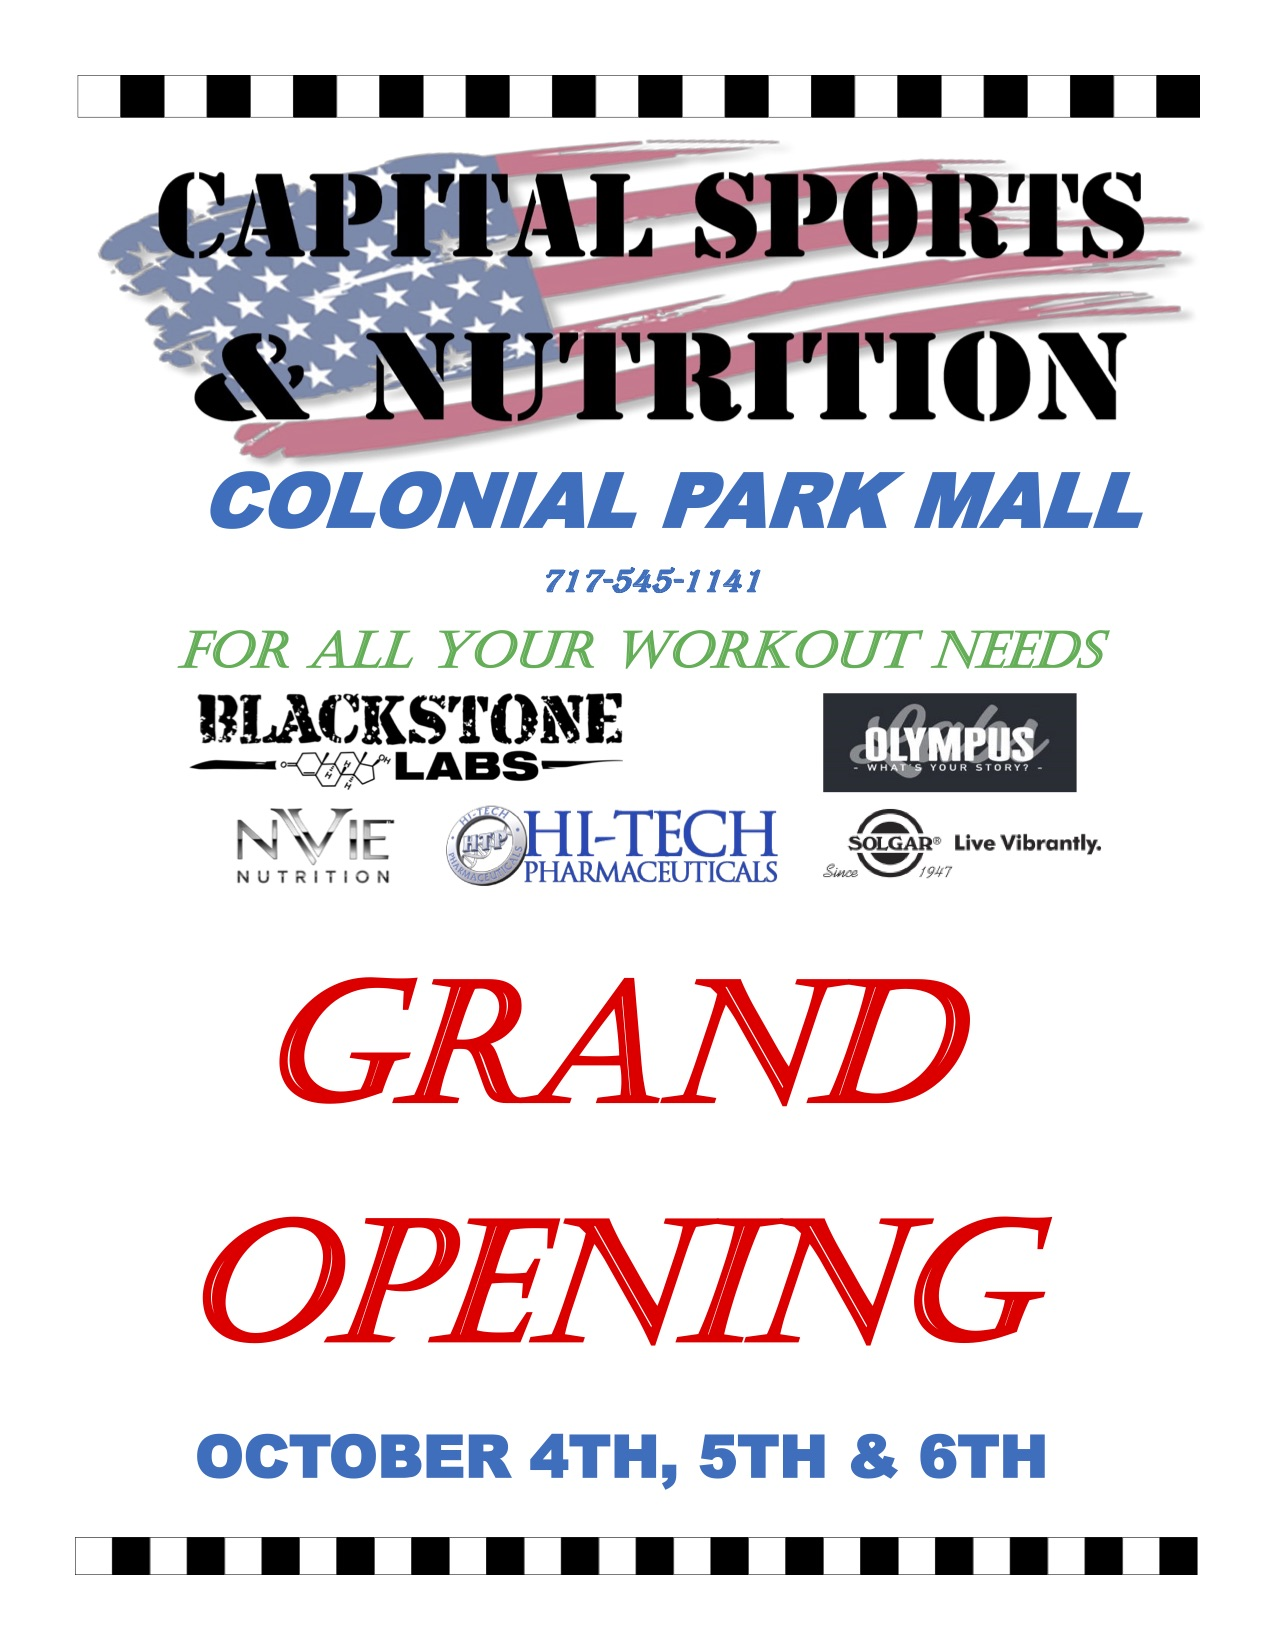 Grand Opening information